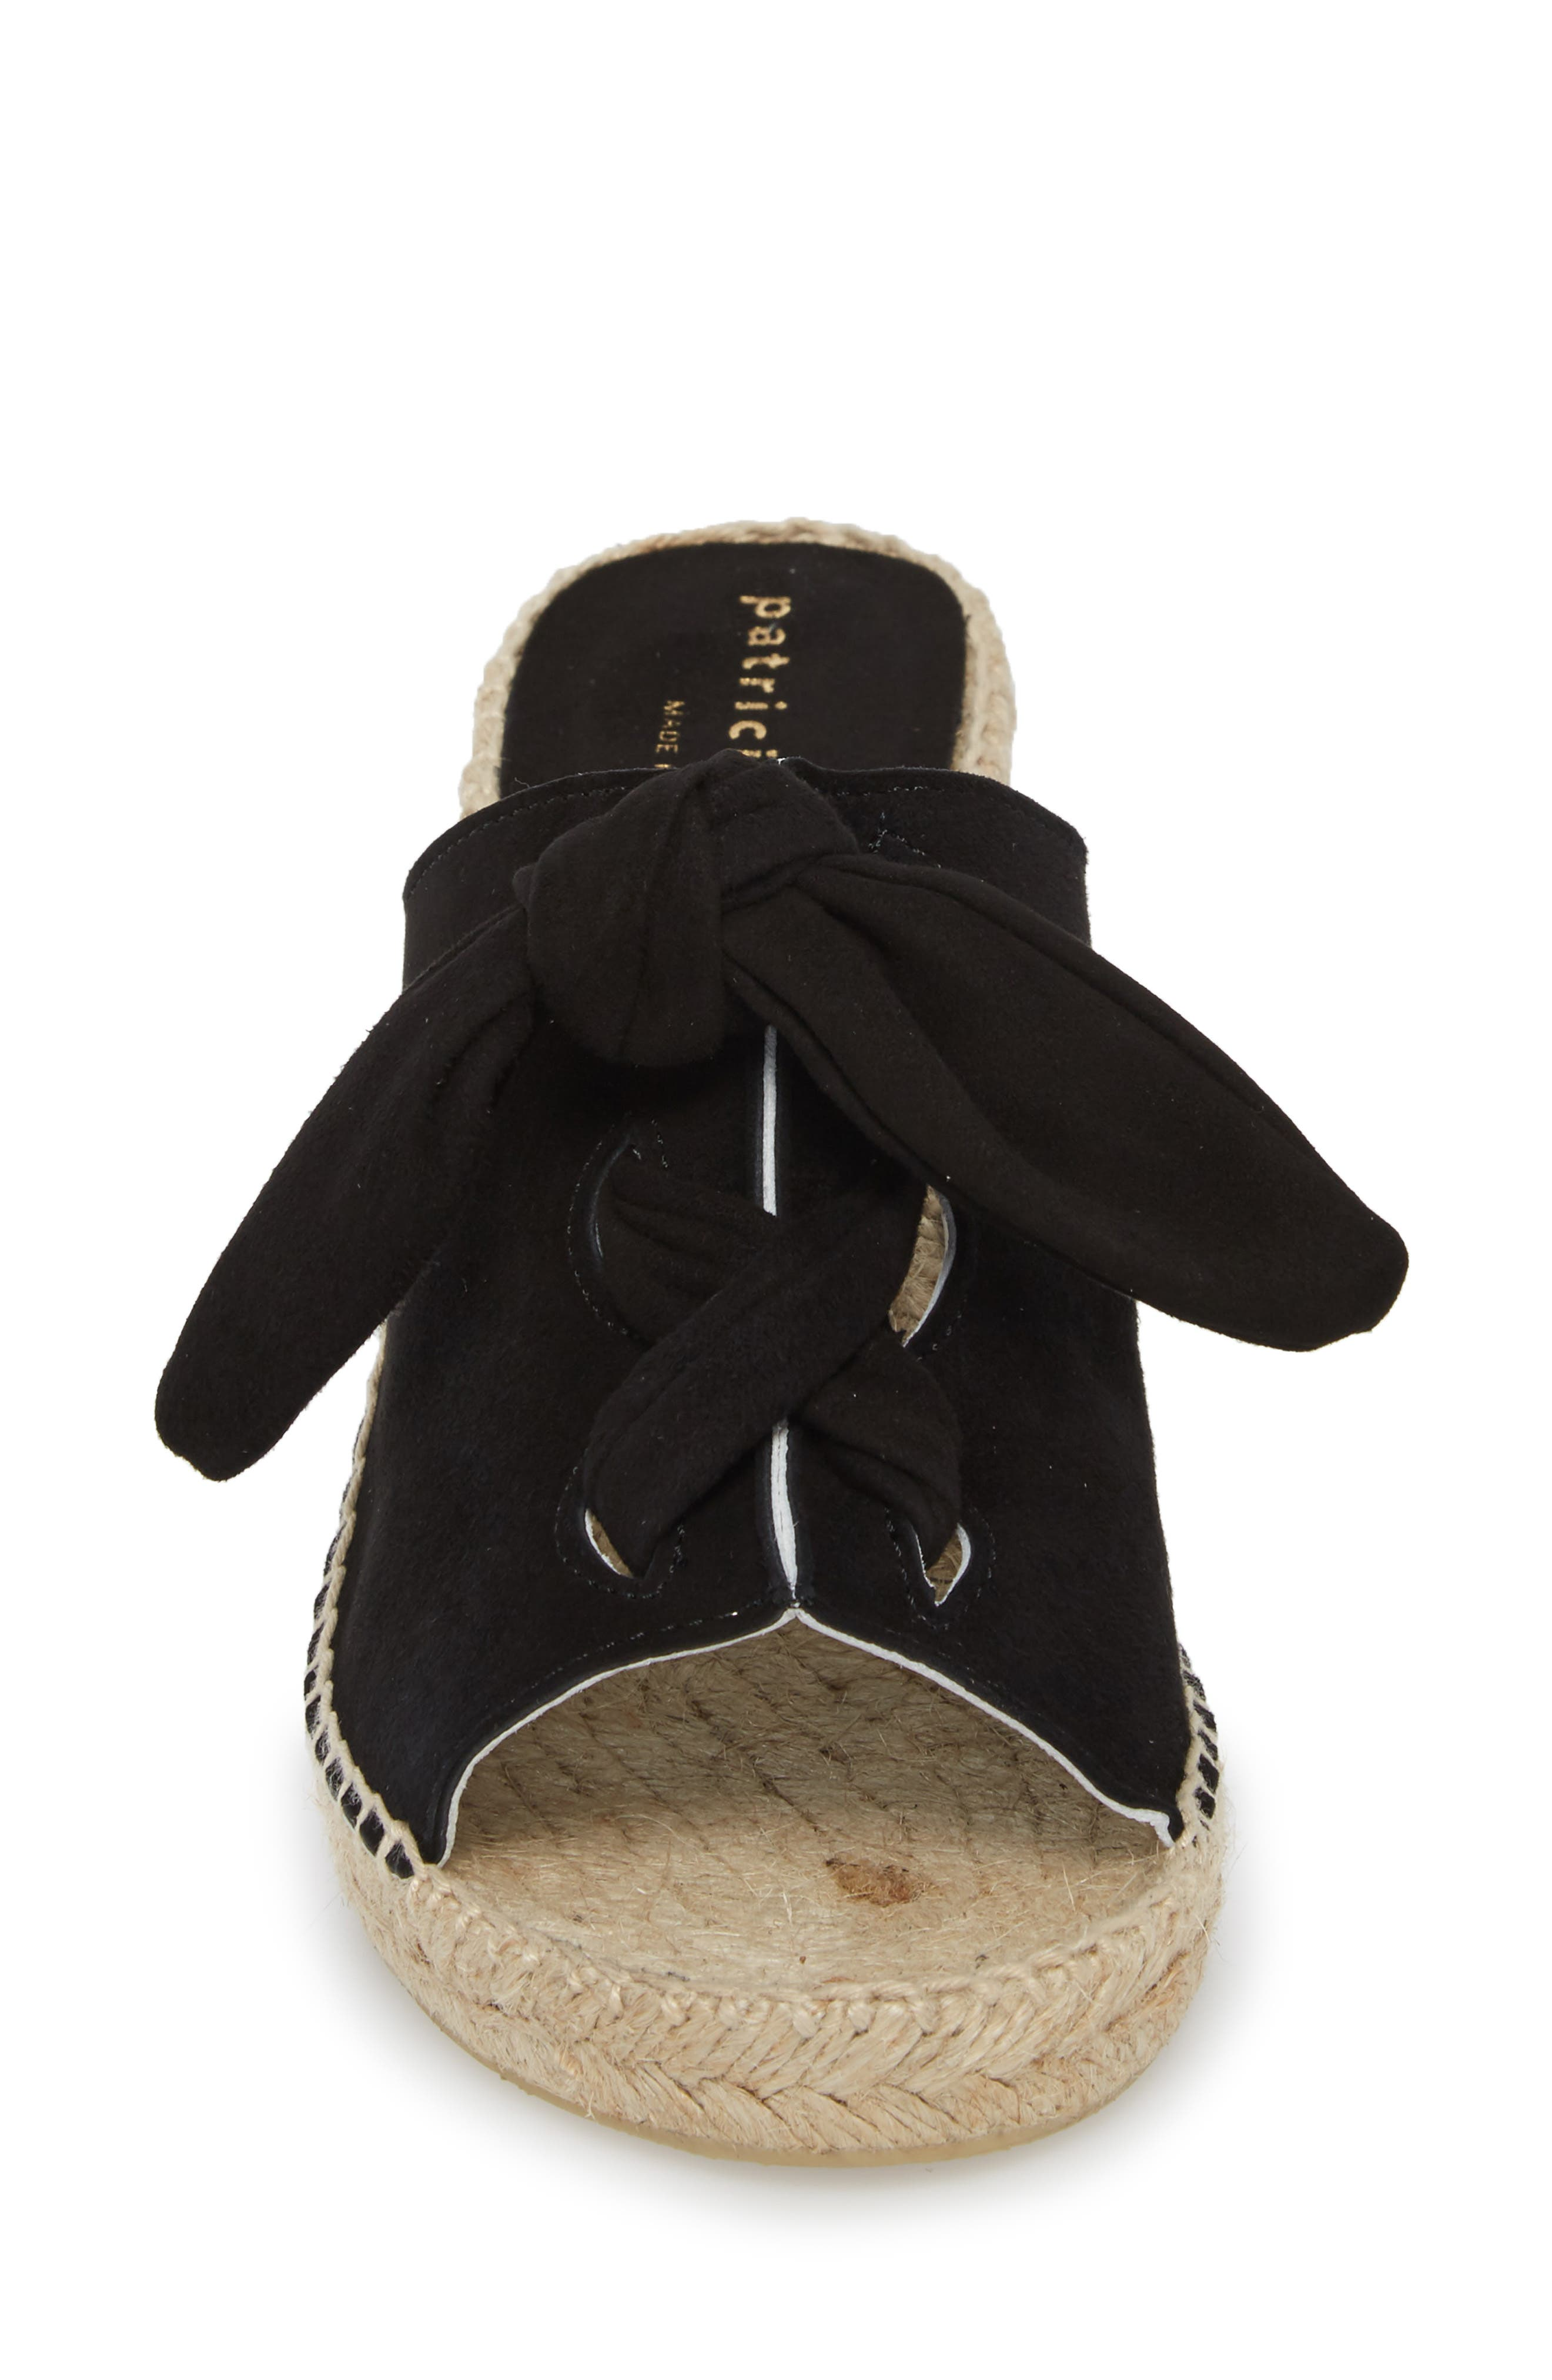 Flirt Espadrille Wedge Sandal,                             Alternate thumbnail 4, color,                             Black Suede